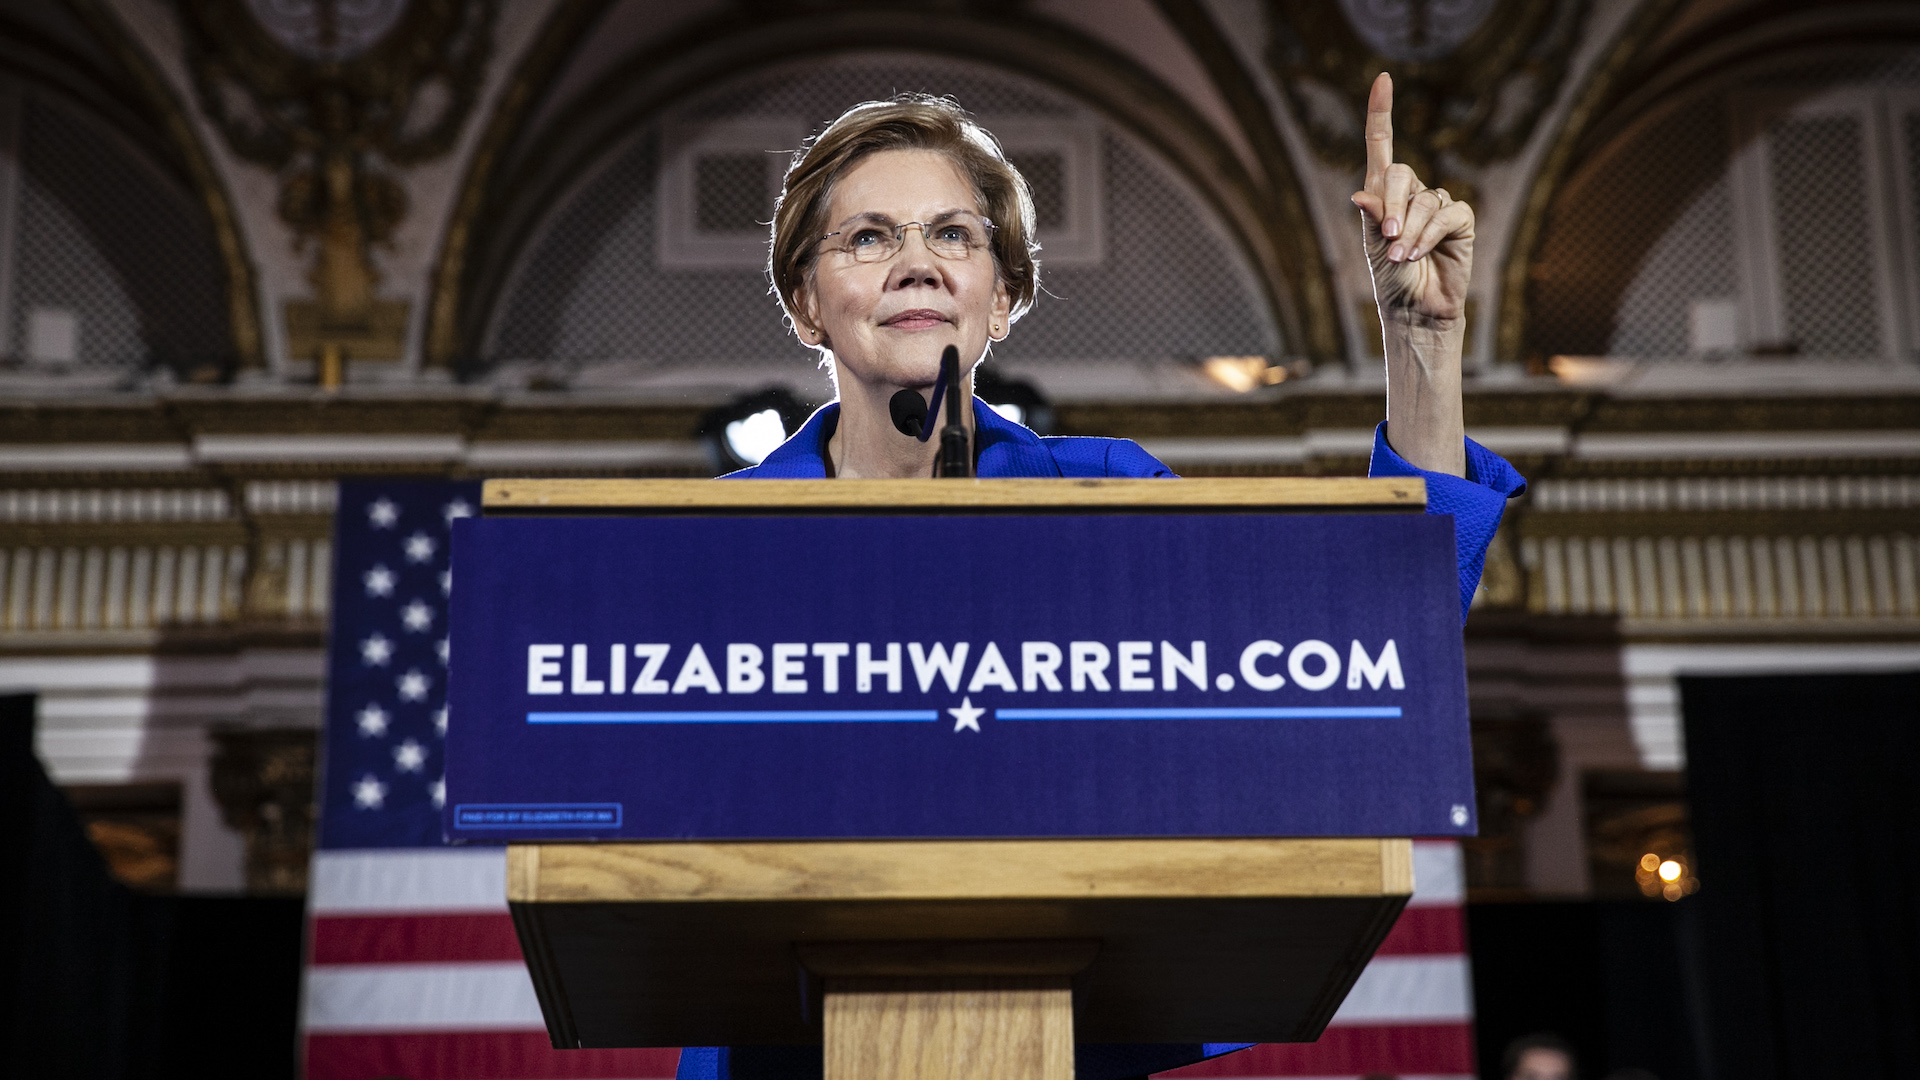 While teaching, Warren worked on nearly 60 legal matters, far more than she'd previously disclosed